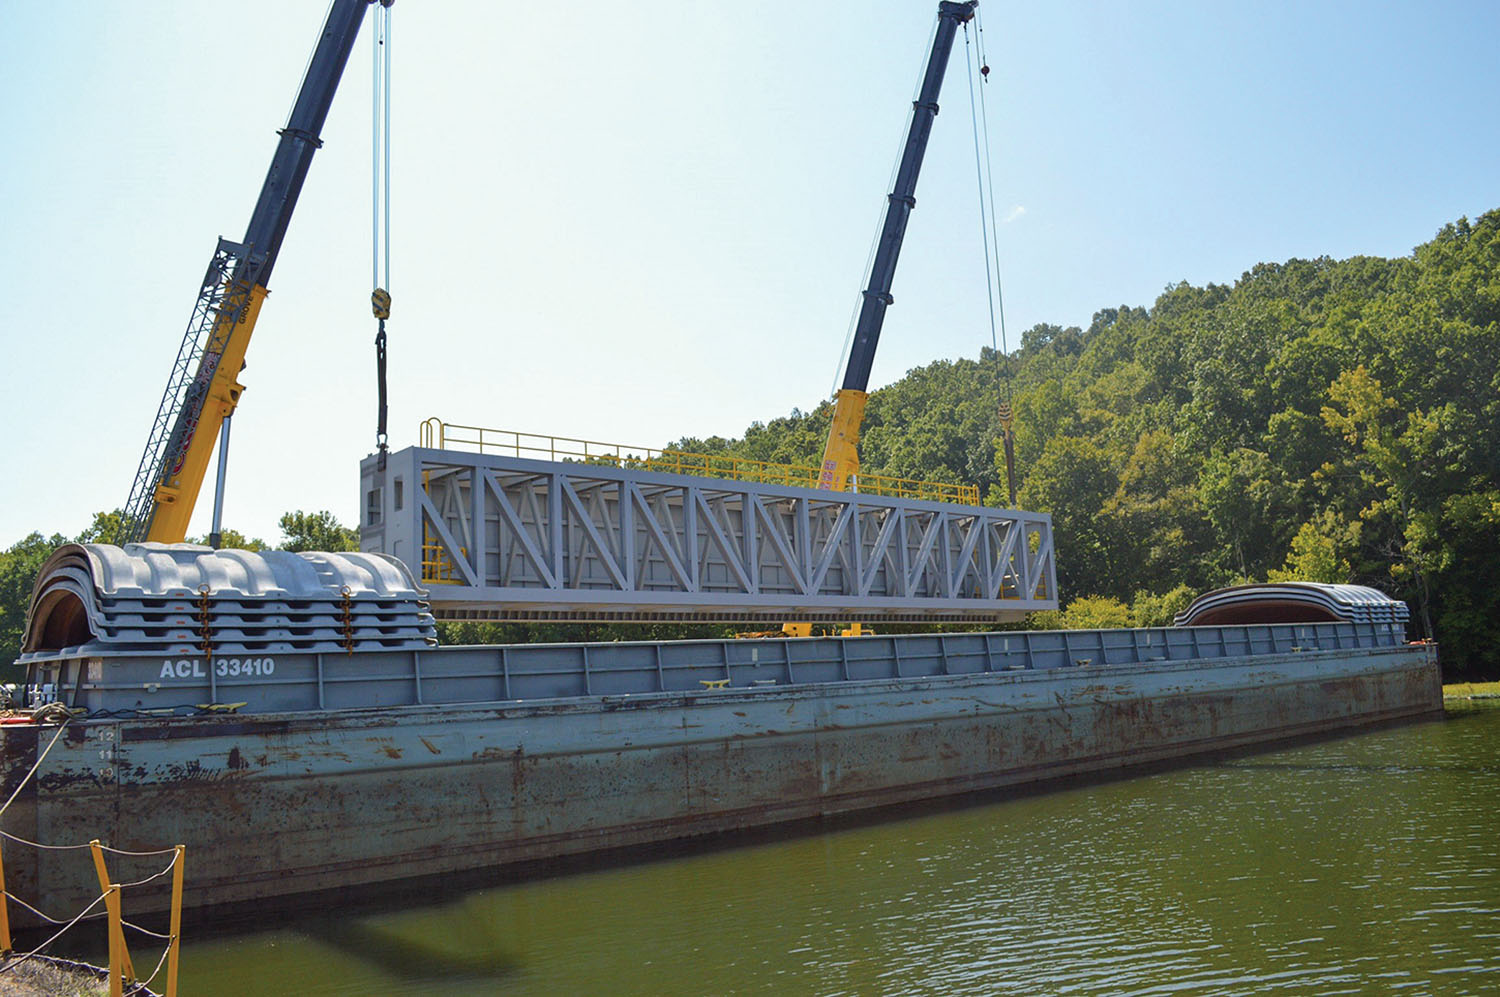 G&G Steel, a fabrication firm based in Russellville, Ala., built five of Olmsted's tainter gates. The company has recently shipped its third lift gate (shown here) to Montgomery Locks and Dam near Pittsburgh. (—photo courtesy of G&G Steel)